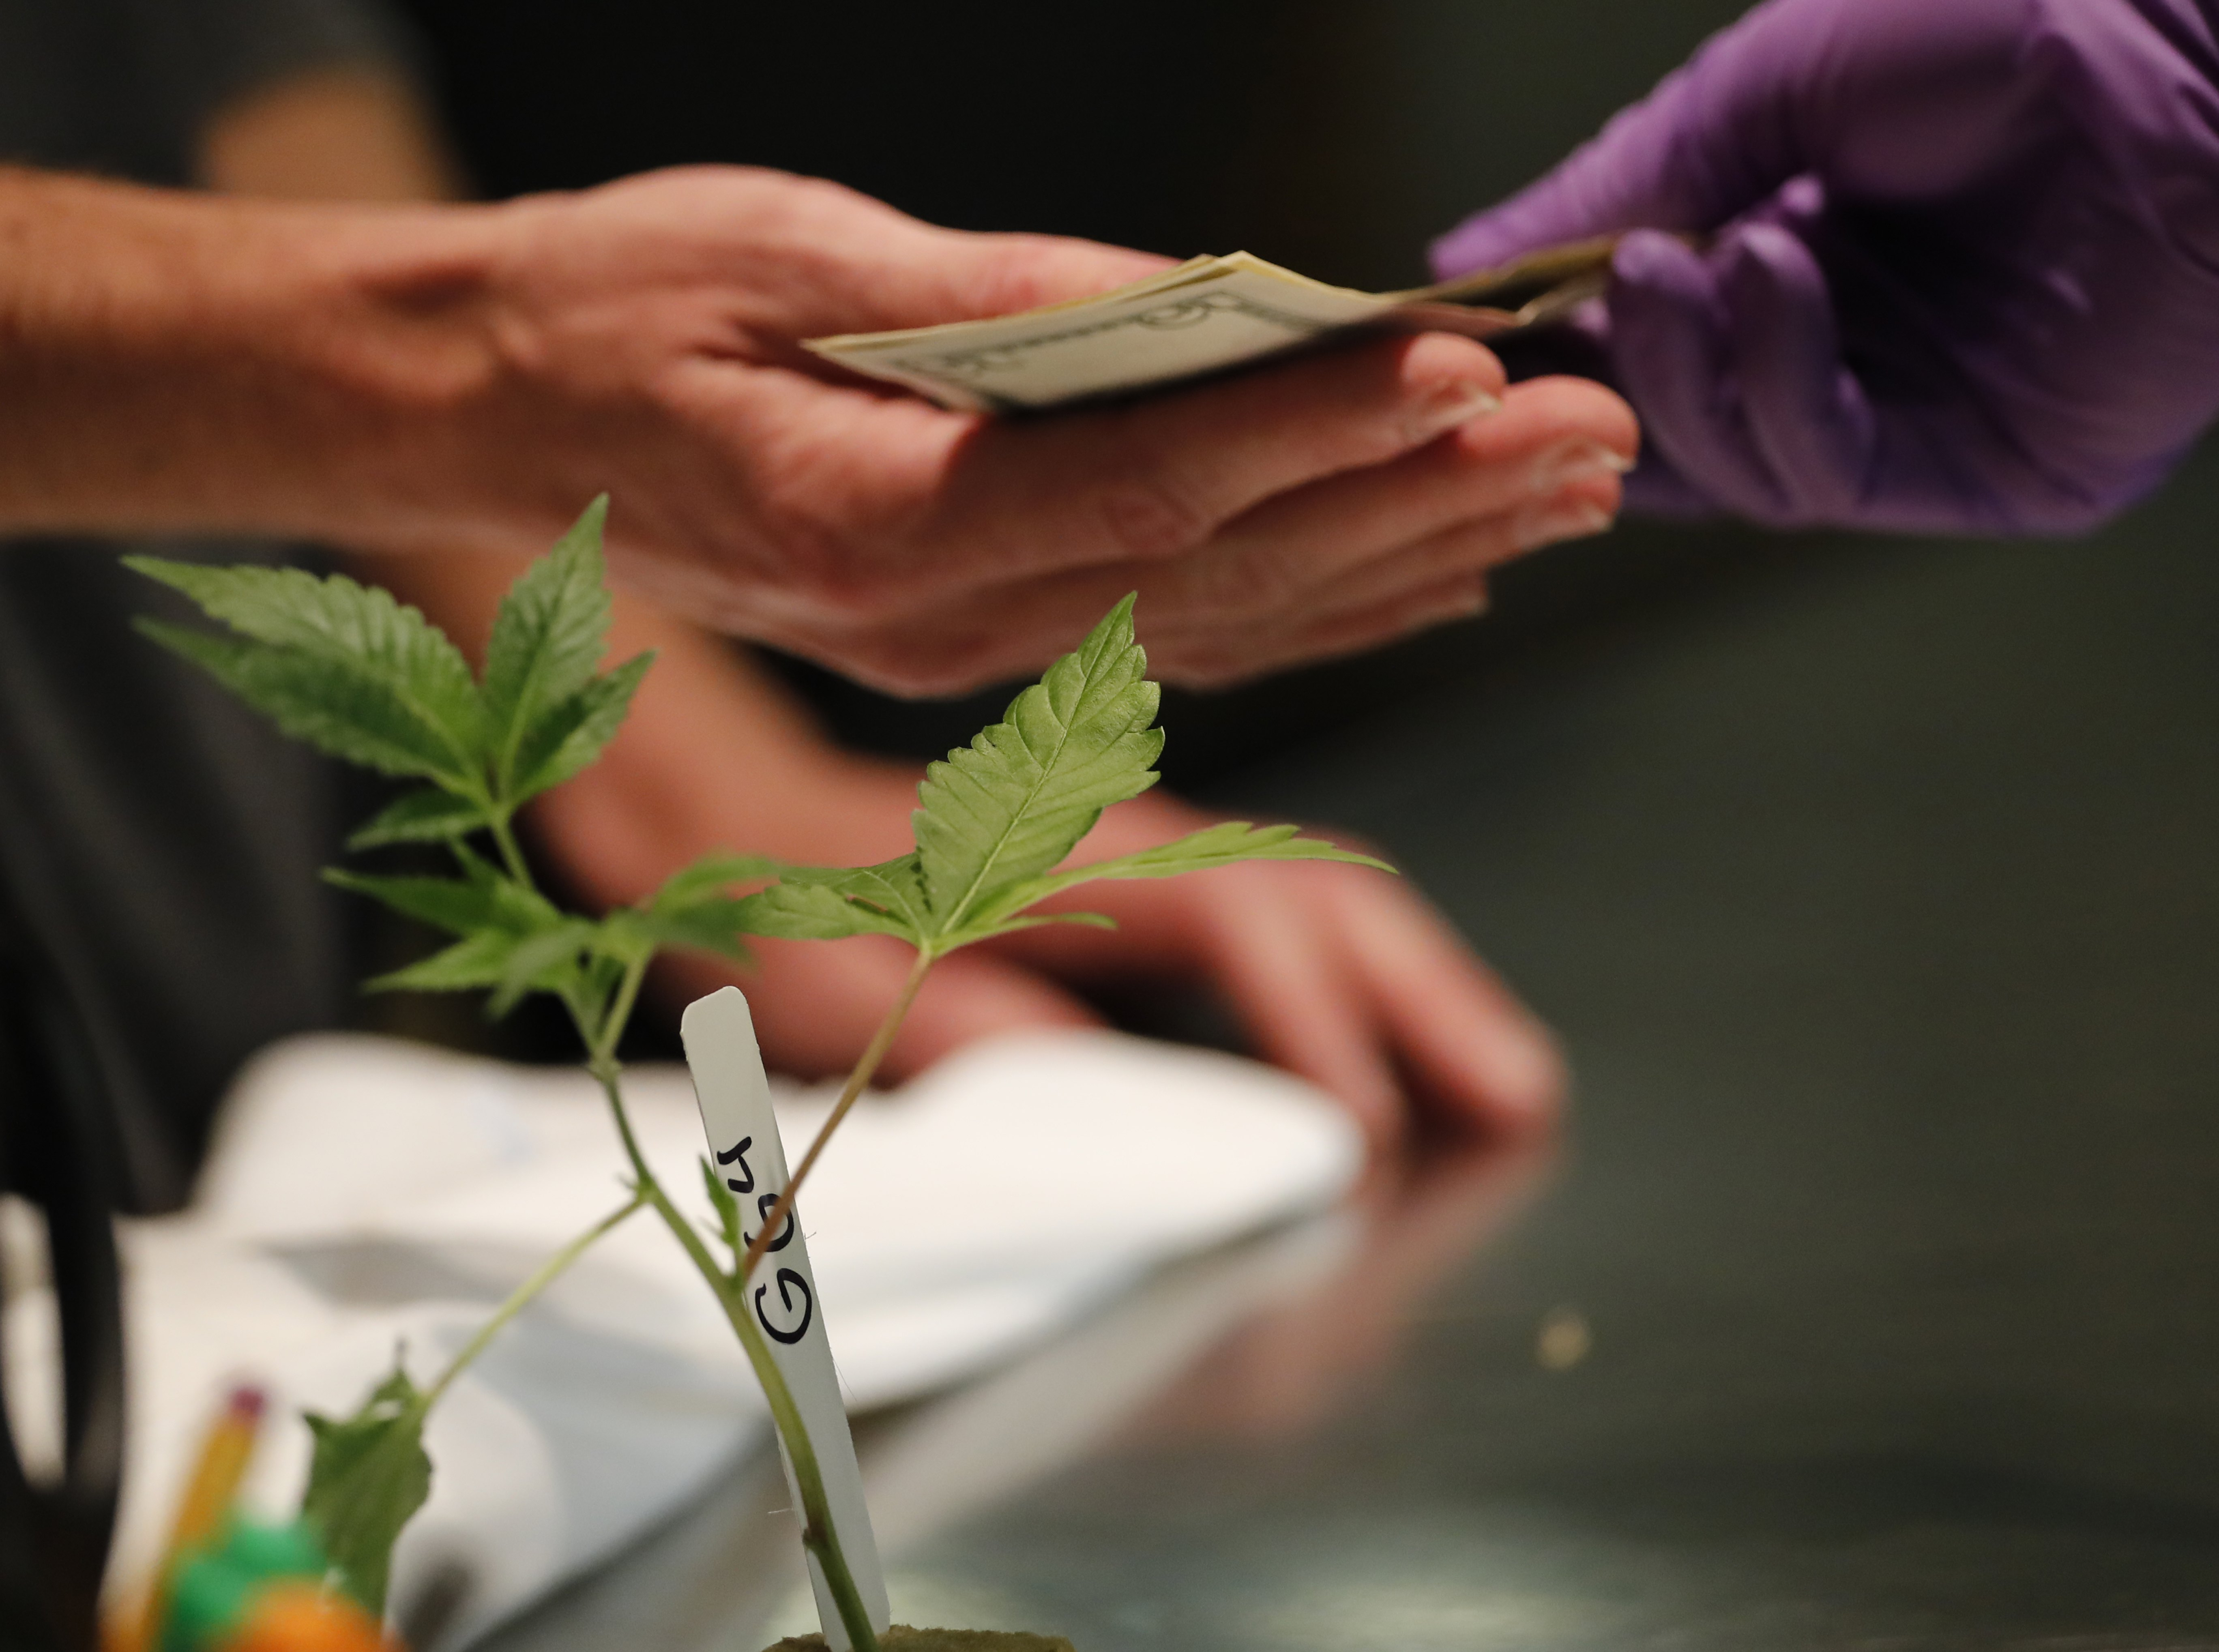 A retails clerk sells a cannabis plant to a customer at the Harborside cannabis dispensary in Oakland, California, USA, 01 January 2018. In November 2016, California voters legalized recreational marijuana for adults of 21 and older and the state was given a year to set retail market regulations.